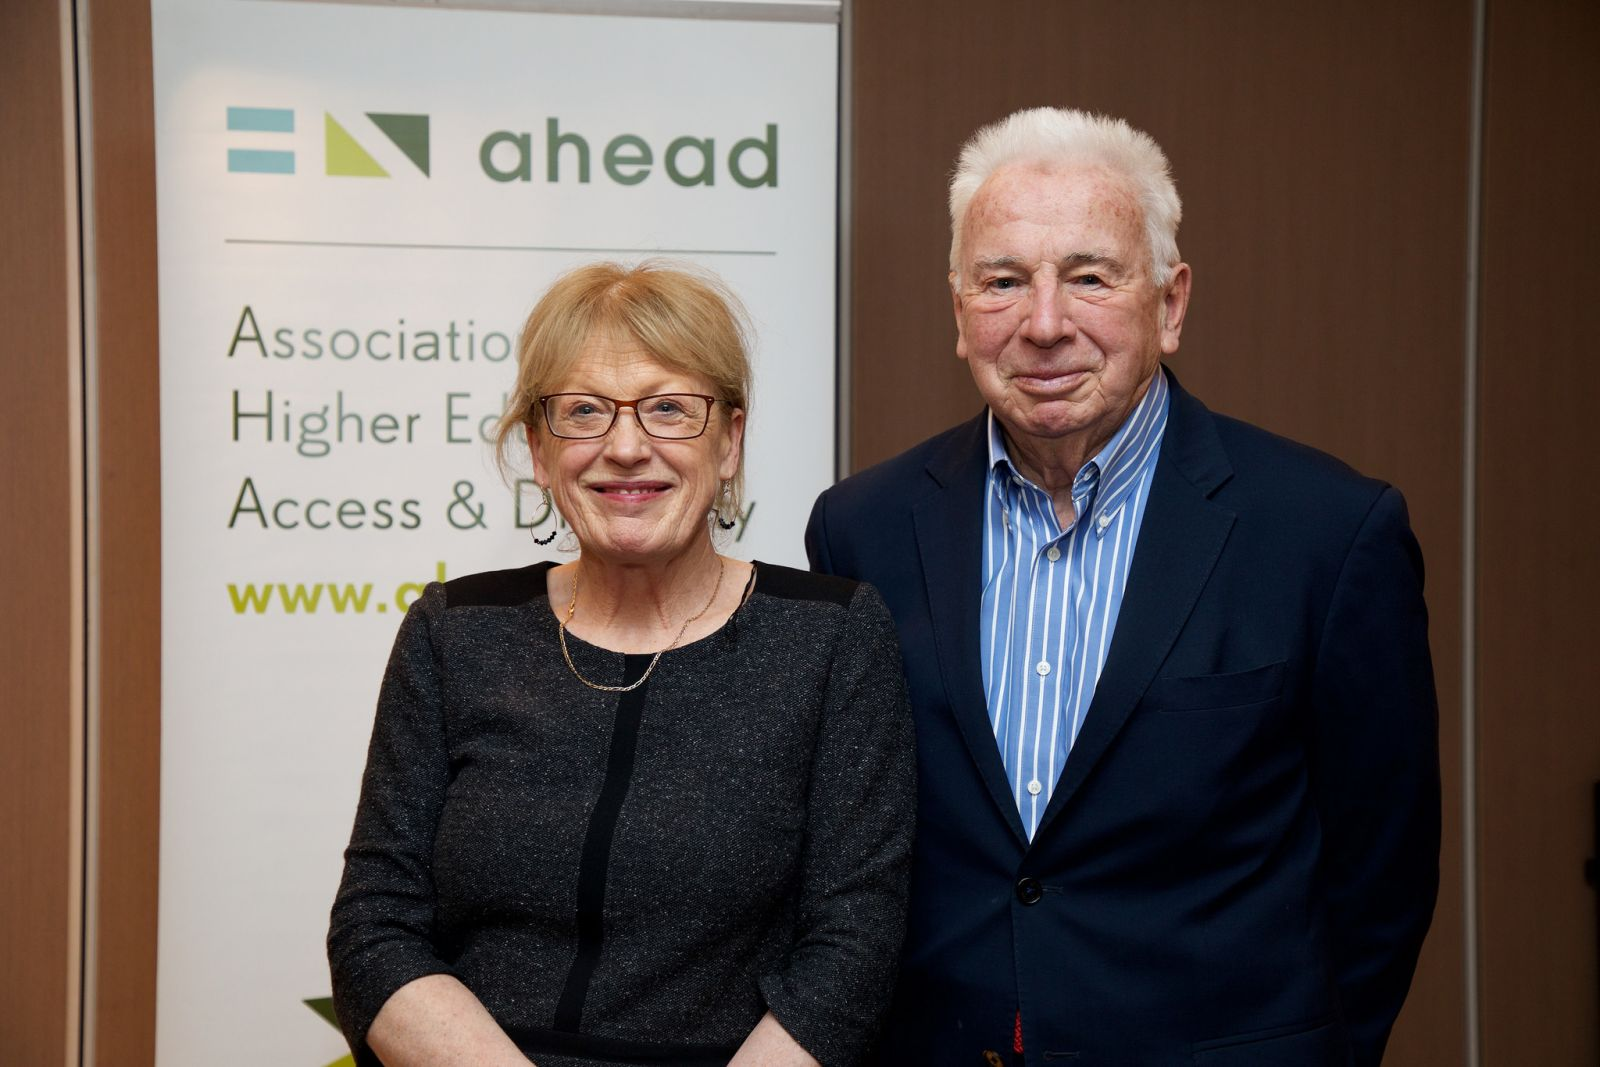 Prof. John Kelly with current AHEAD Executive Director Ann Heelan